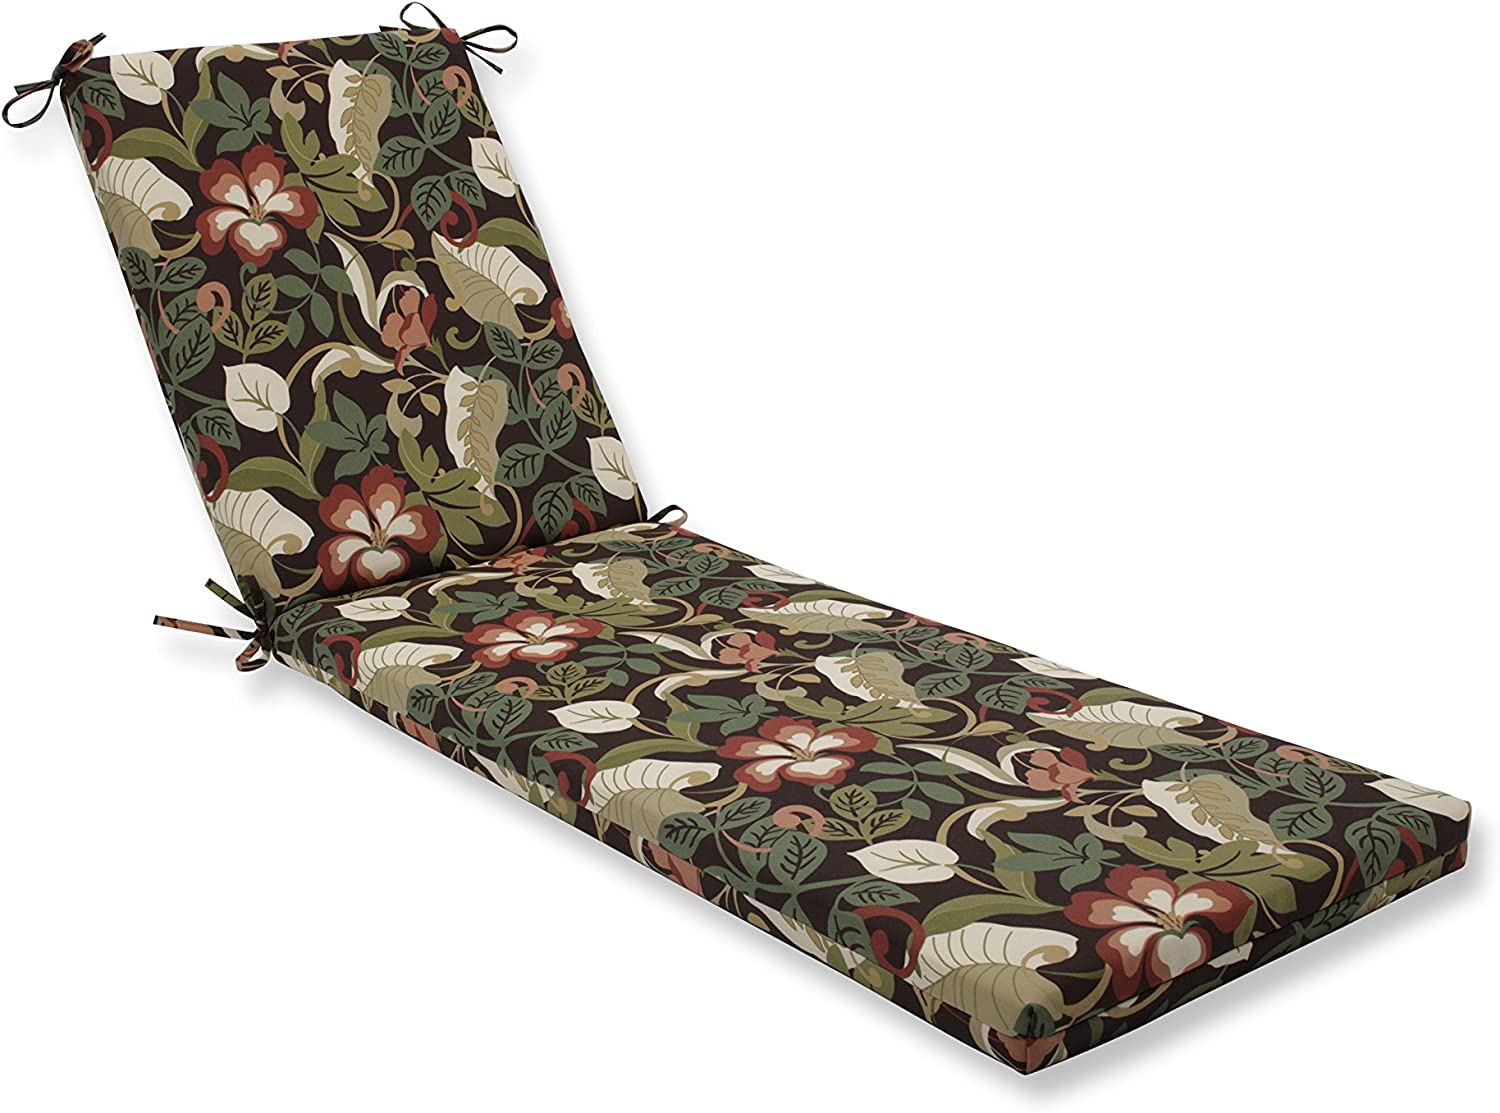 Pillow Perfect Outdoor Indoor Coventry Cafe Chaise Lounge Cushion 80x23x3